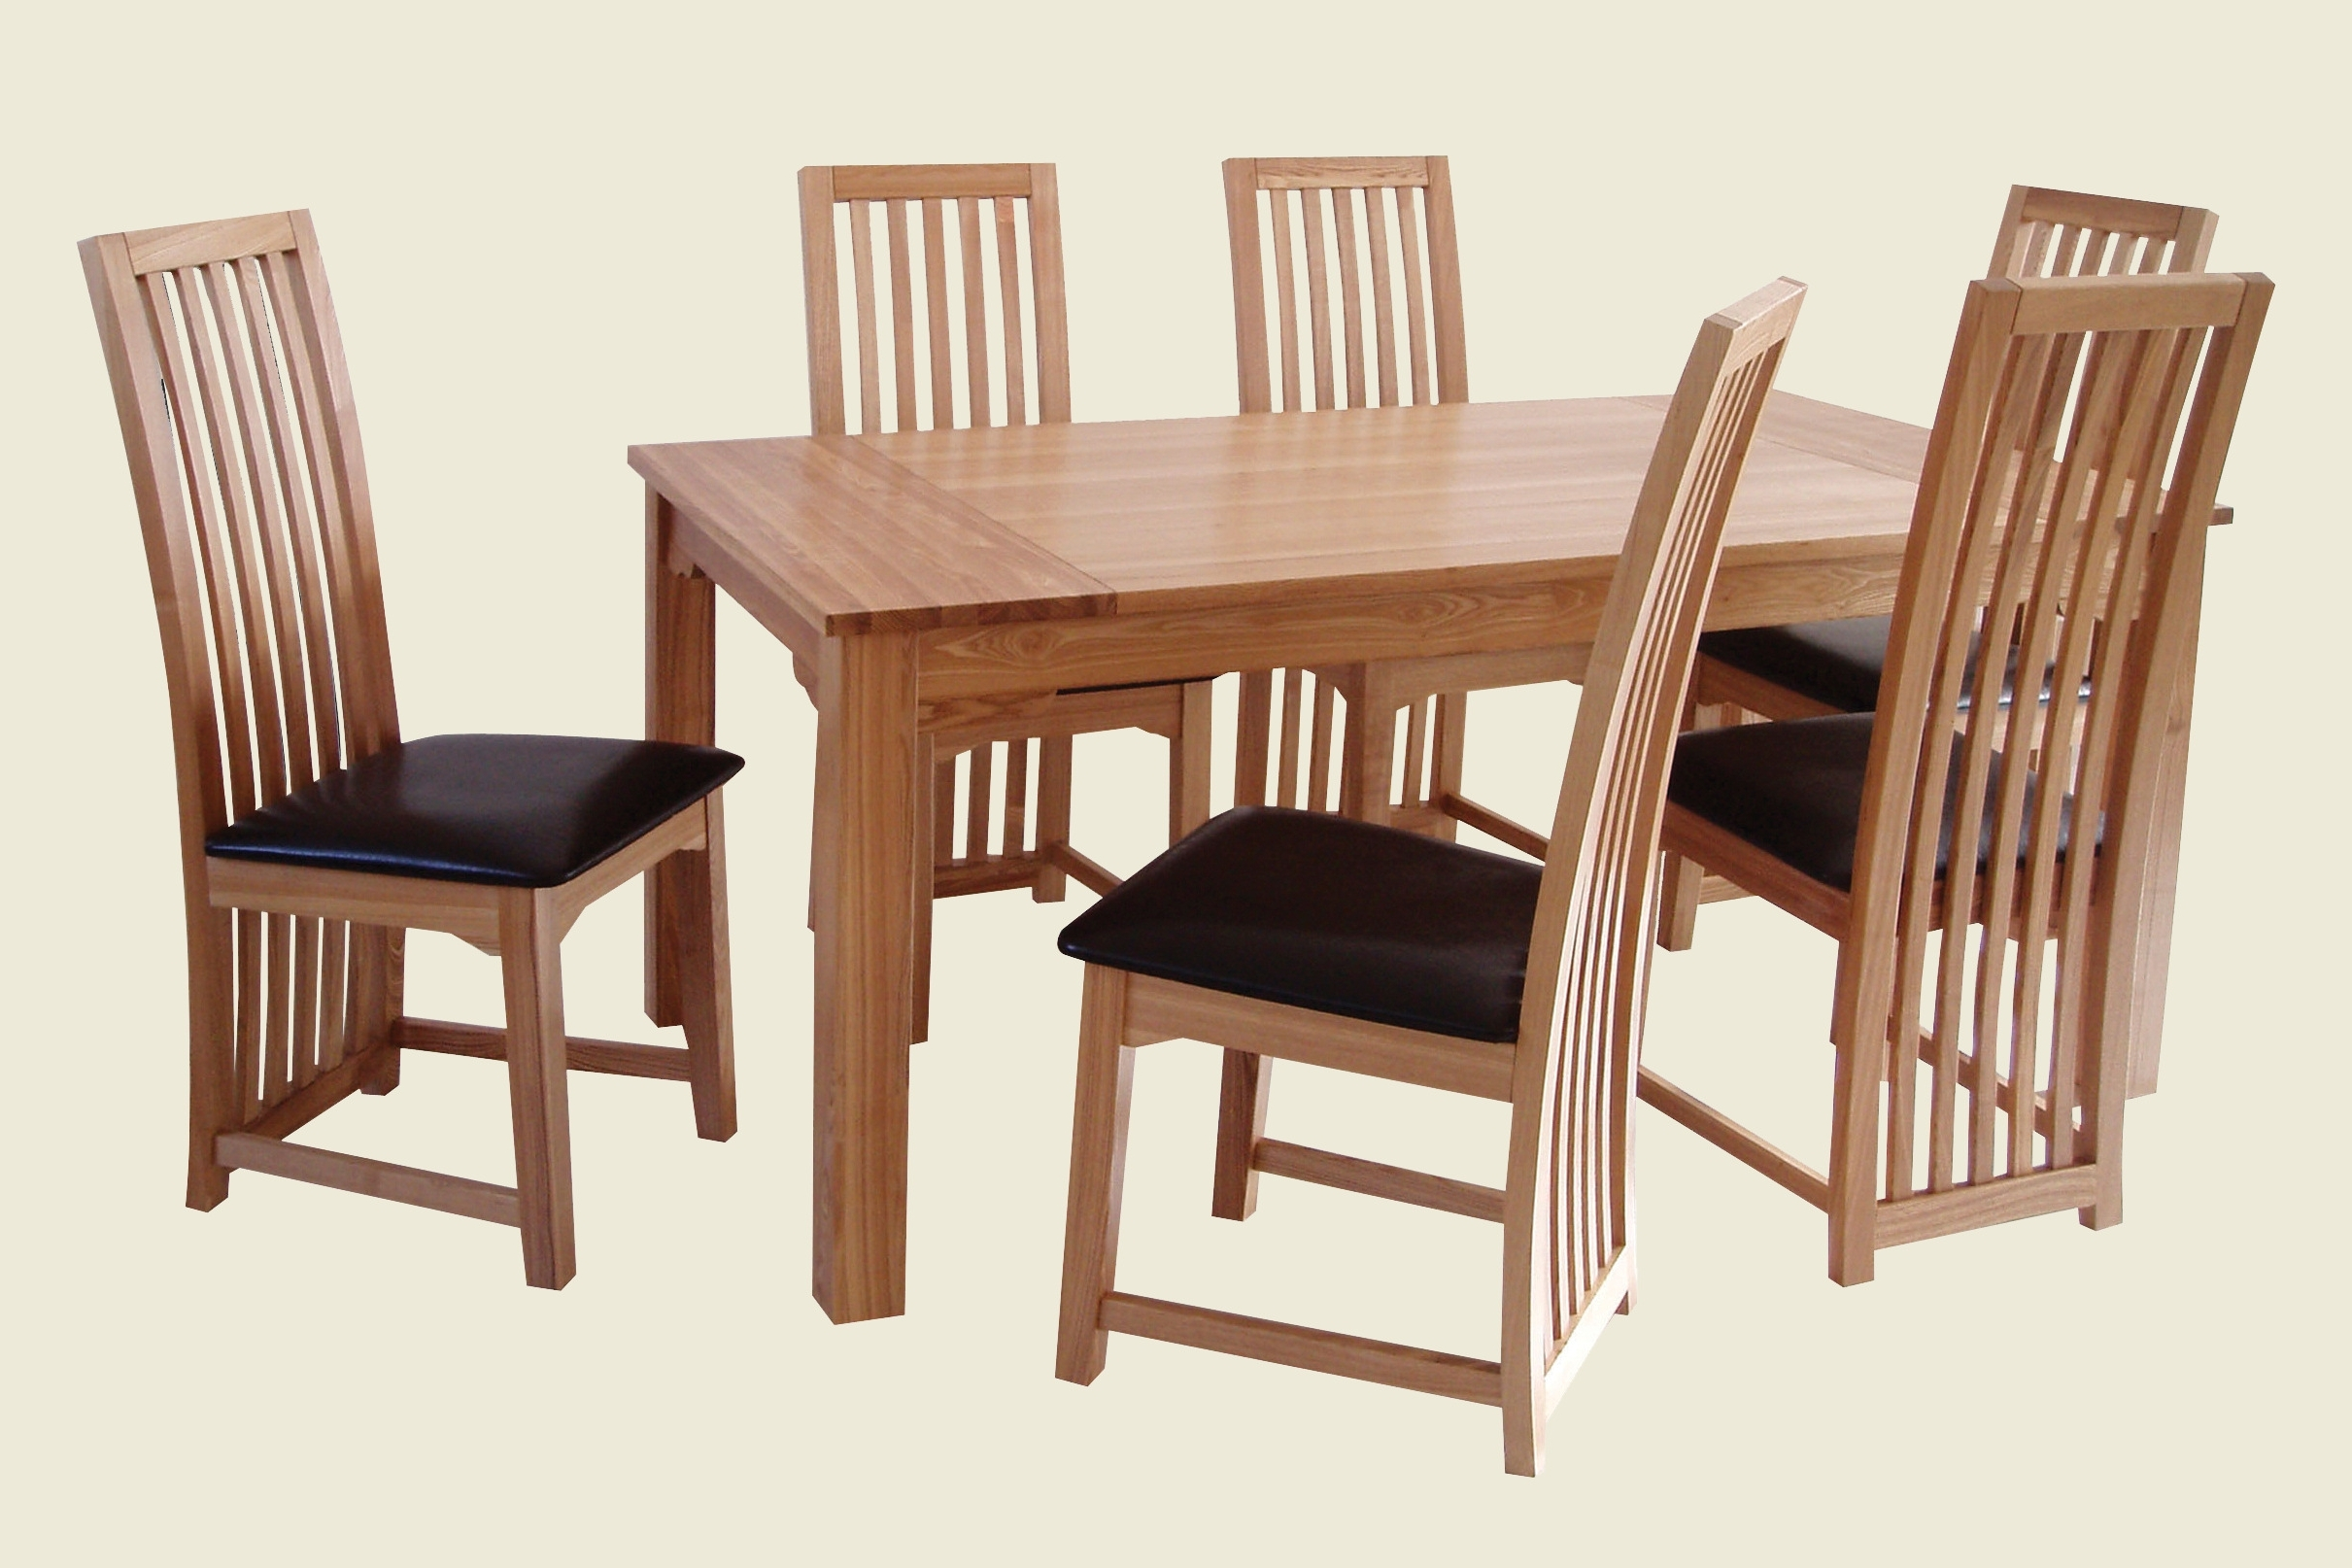 Dining Tables And Chairs Sets inside Favorite Unique Images Dining Table And Chairs Light Of Dining Room Dining